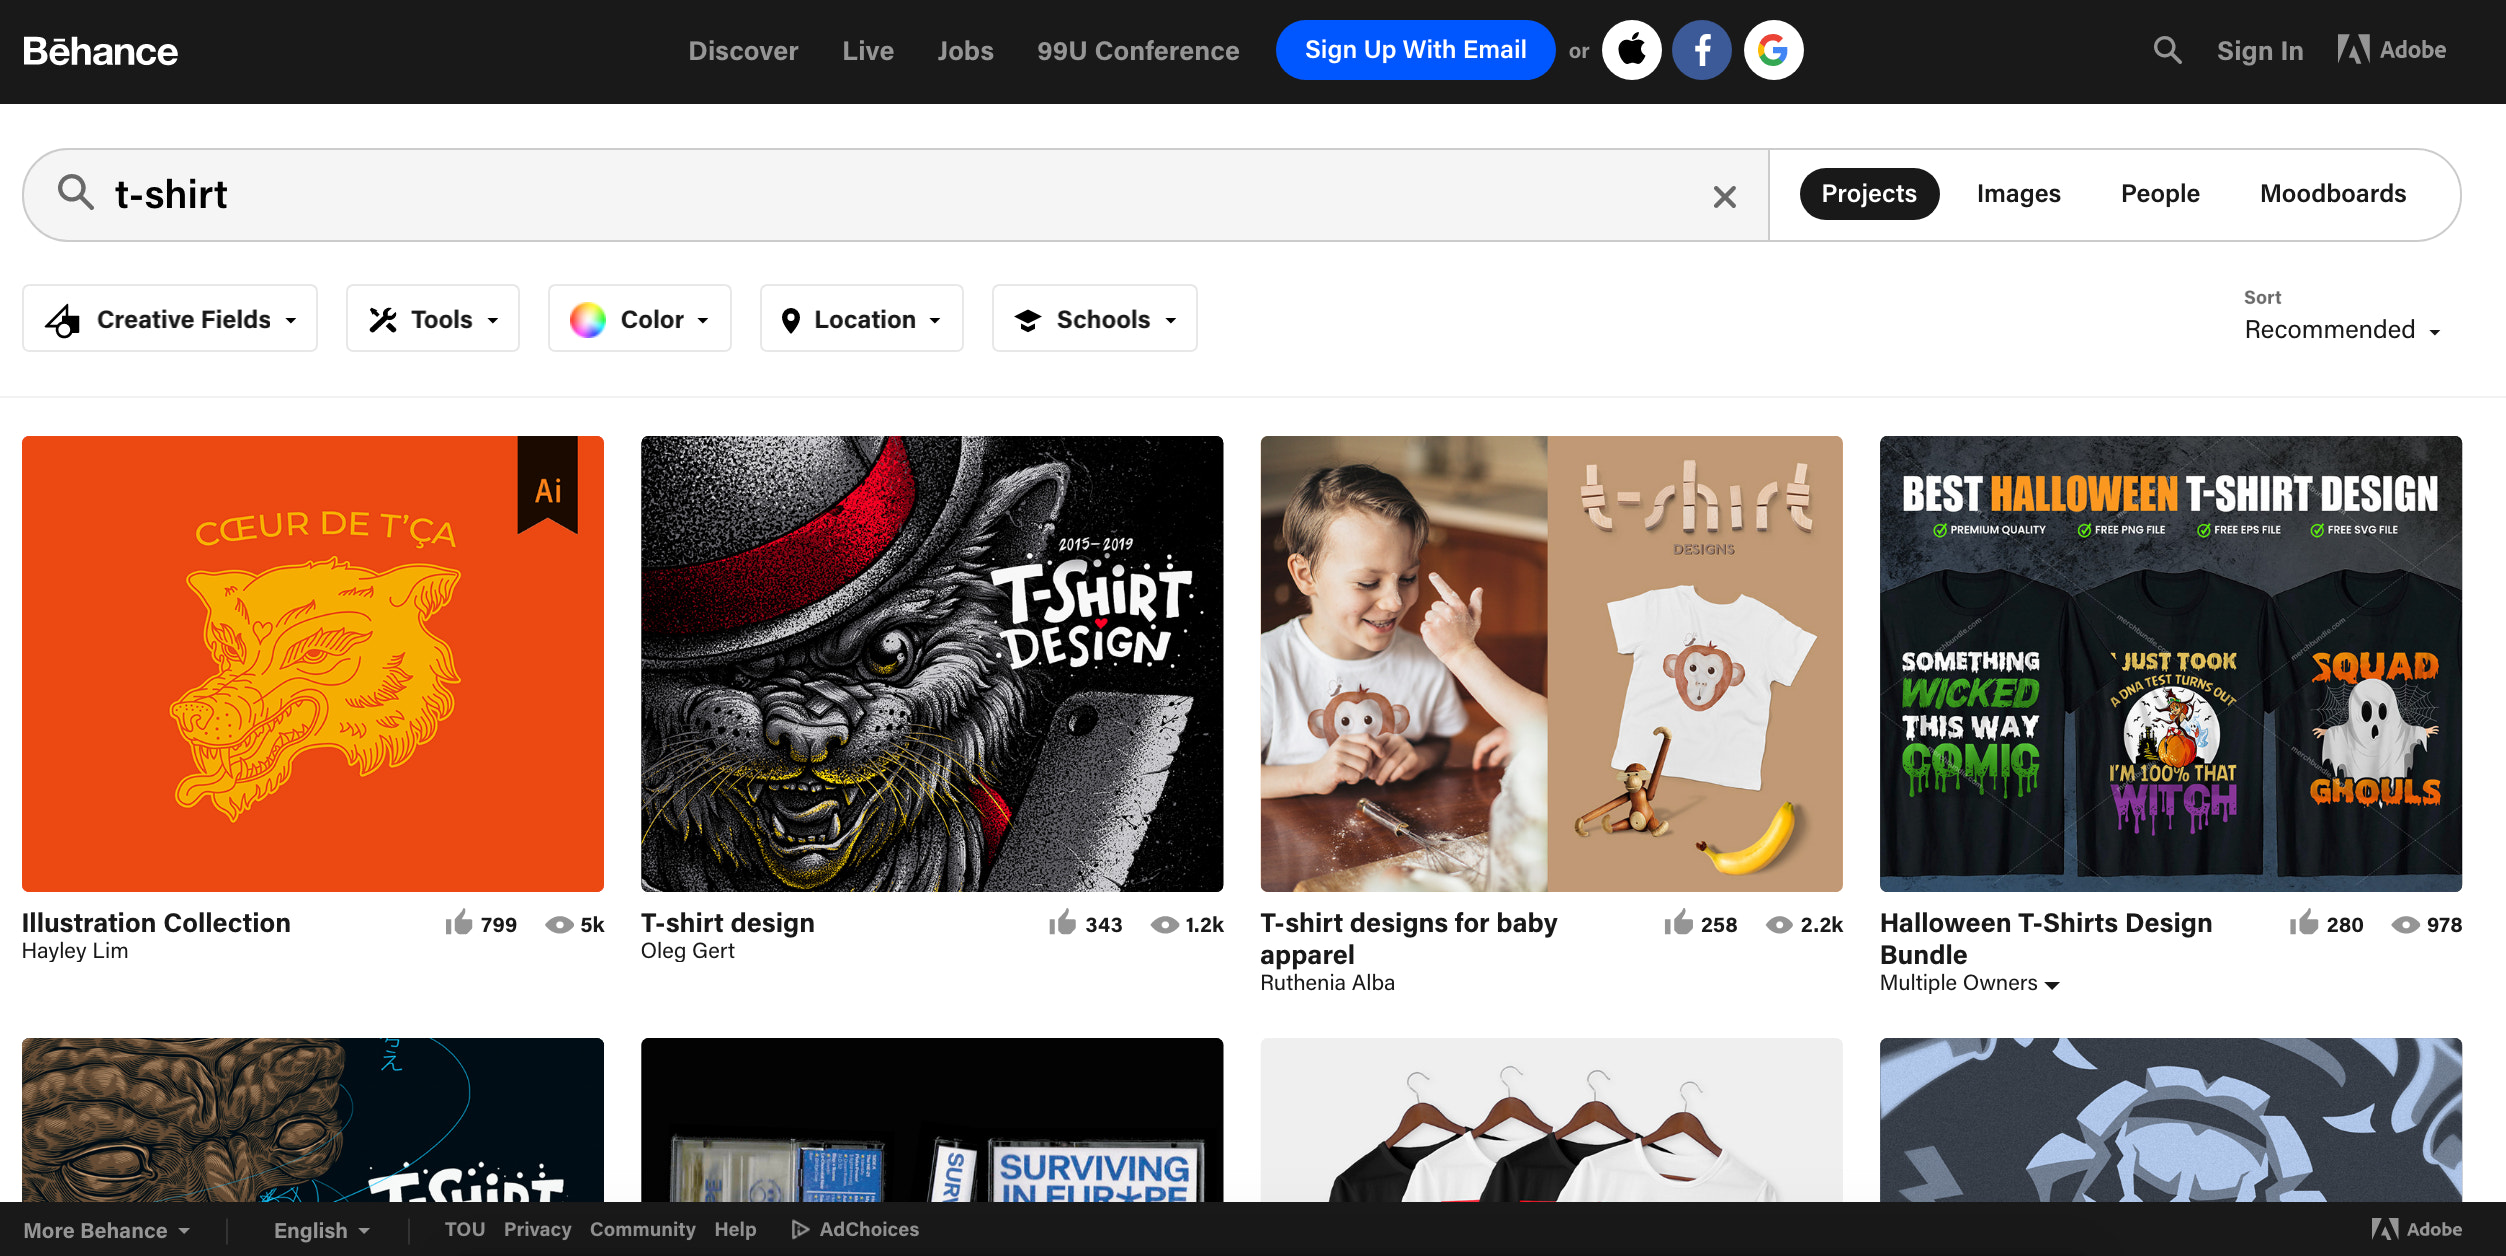 T-shirt search query in Behance